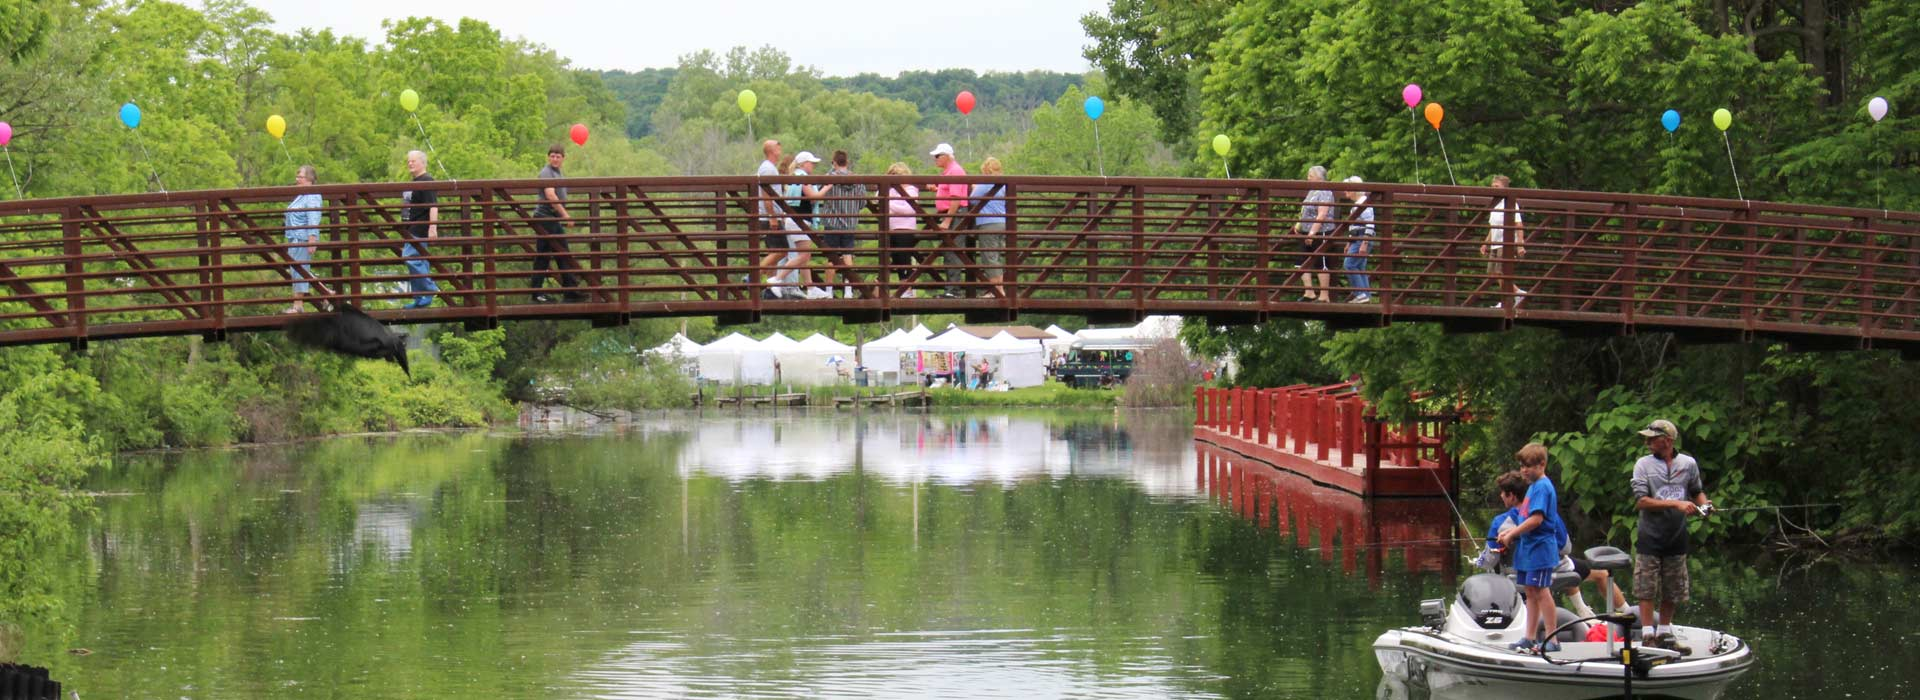 Keuka Arts Festival Bridge